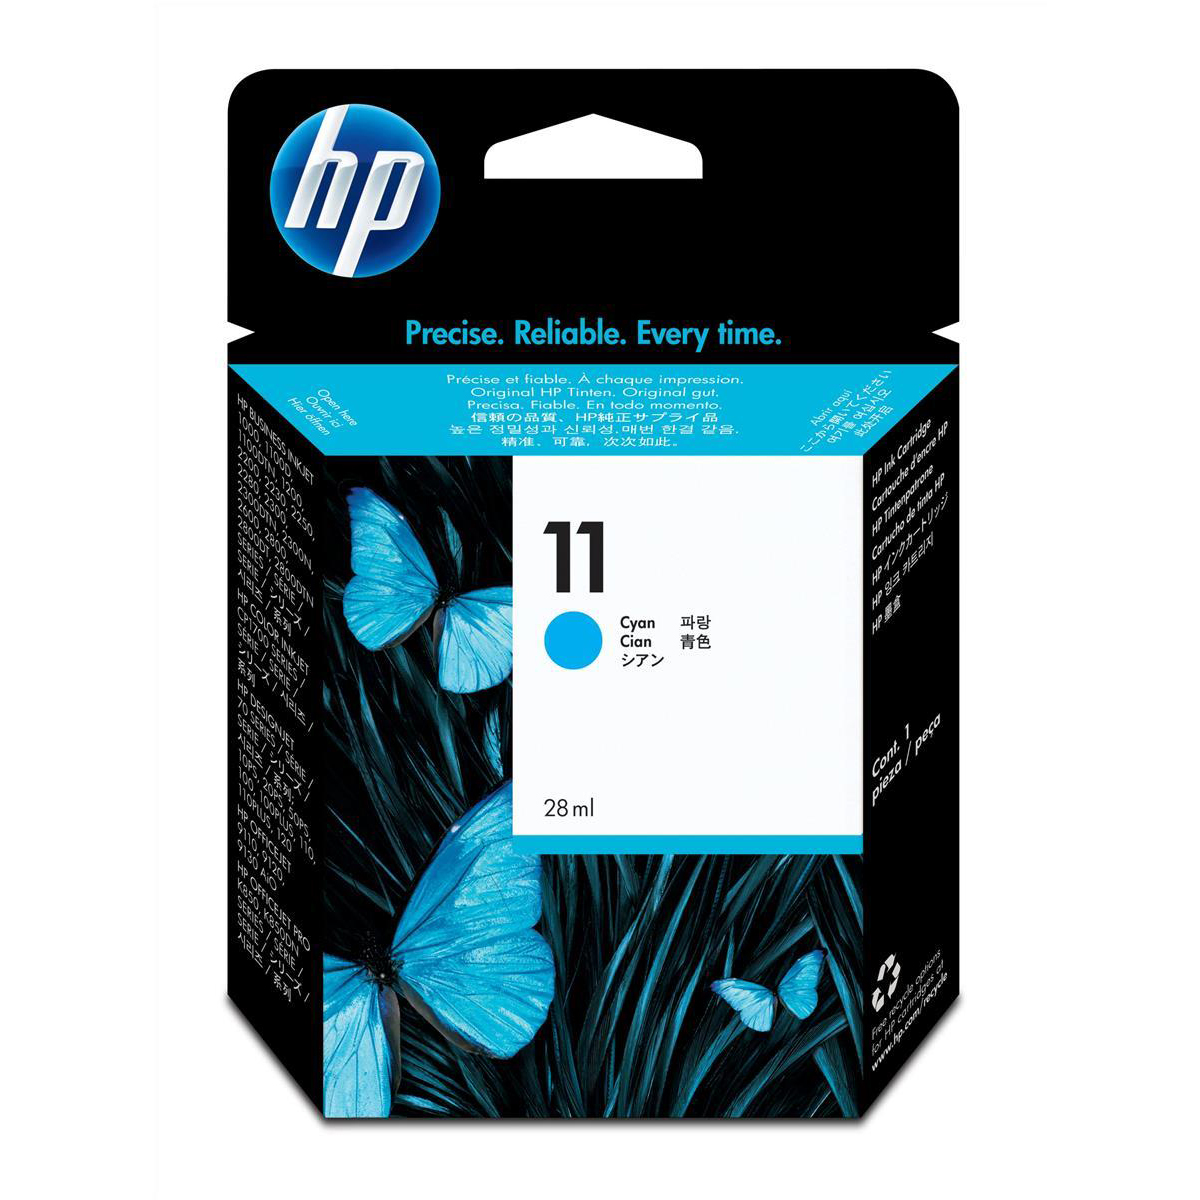 Hewlett Packard HP No.11 Inkjet Cartridge Page Life 2350pp 28ml Cyan Ref C4836A